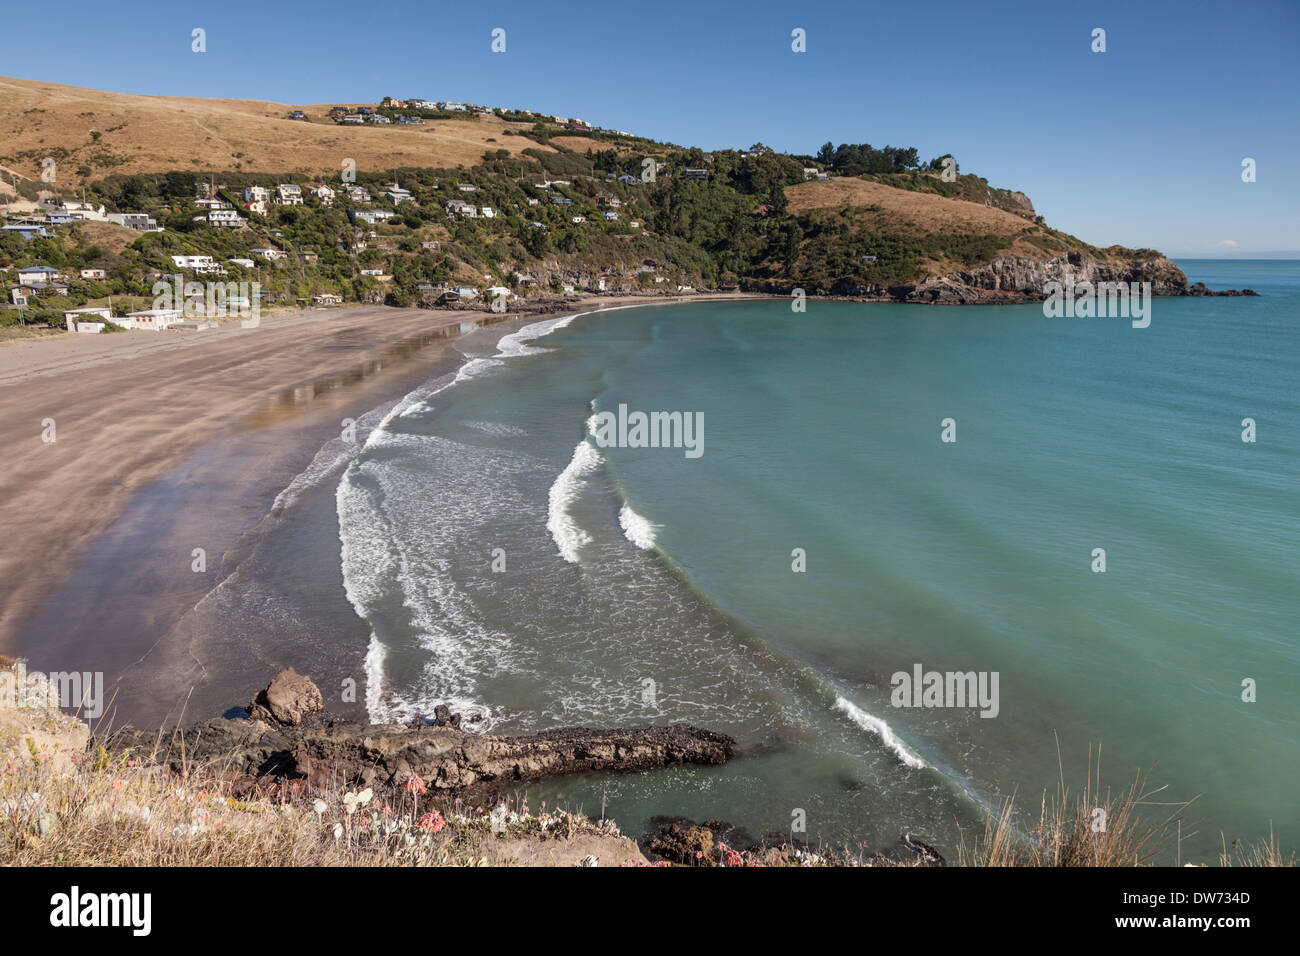 Taylor's Mistake, Banks Peninsula, New Zealand. The origin of the name isn't known for certain, but is often attributed to a... - Stock Image